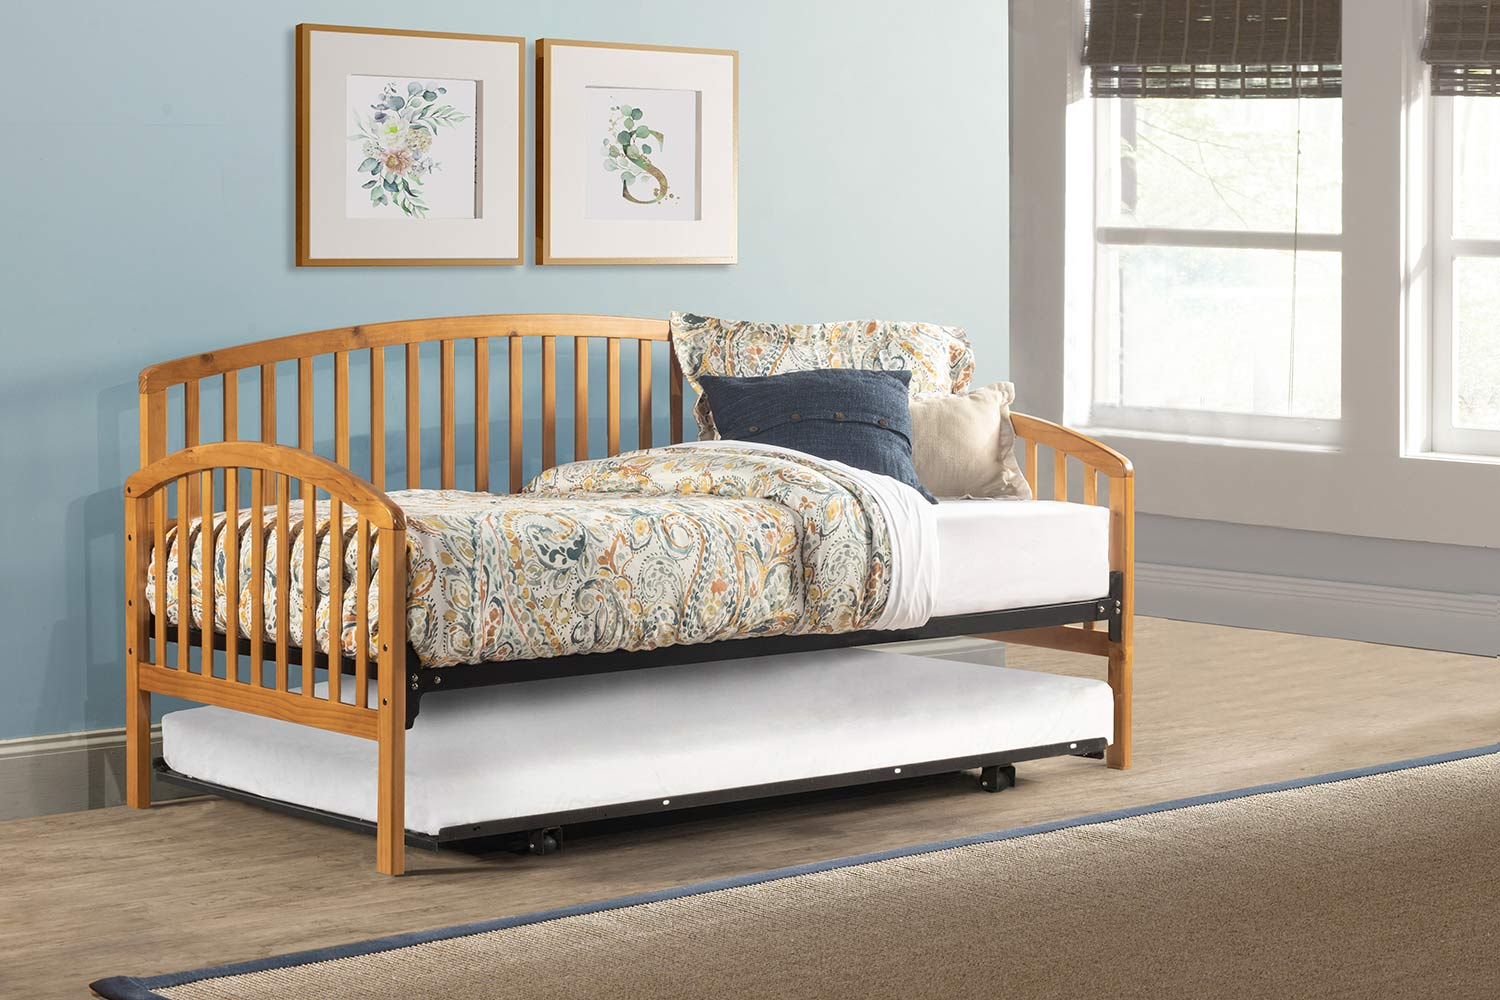 Hillsdale Carolina Daybed with Roll Out Trundle Unit - Country Pine